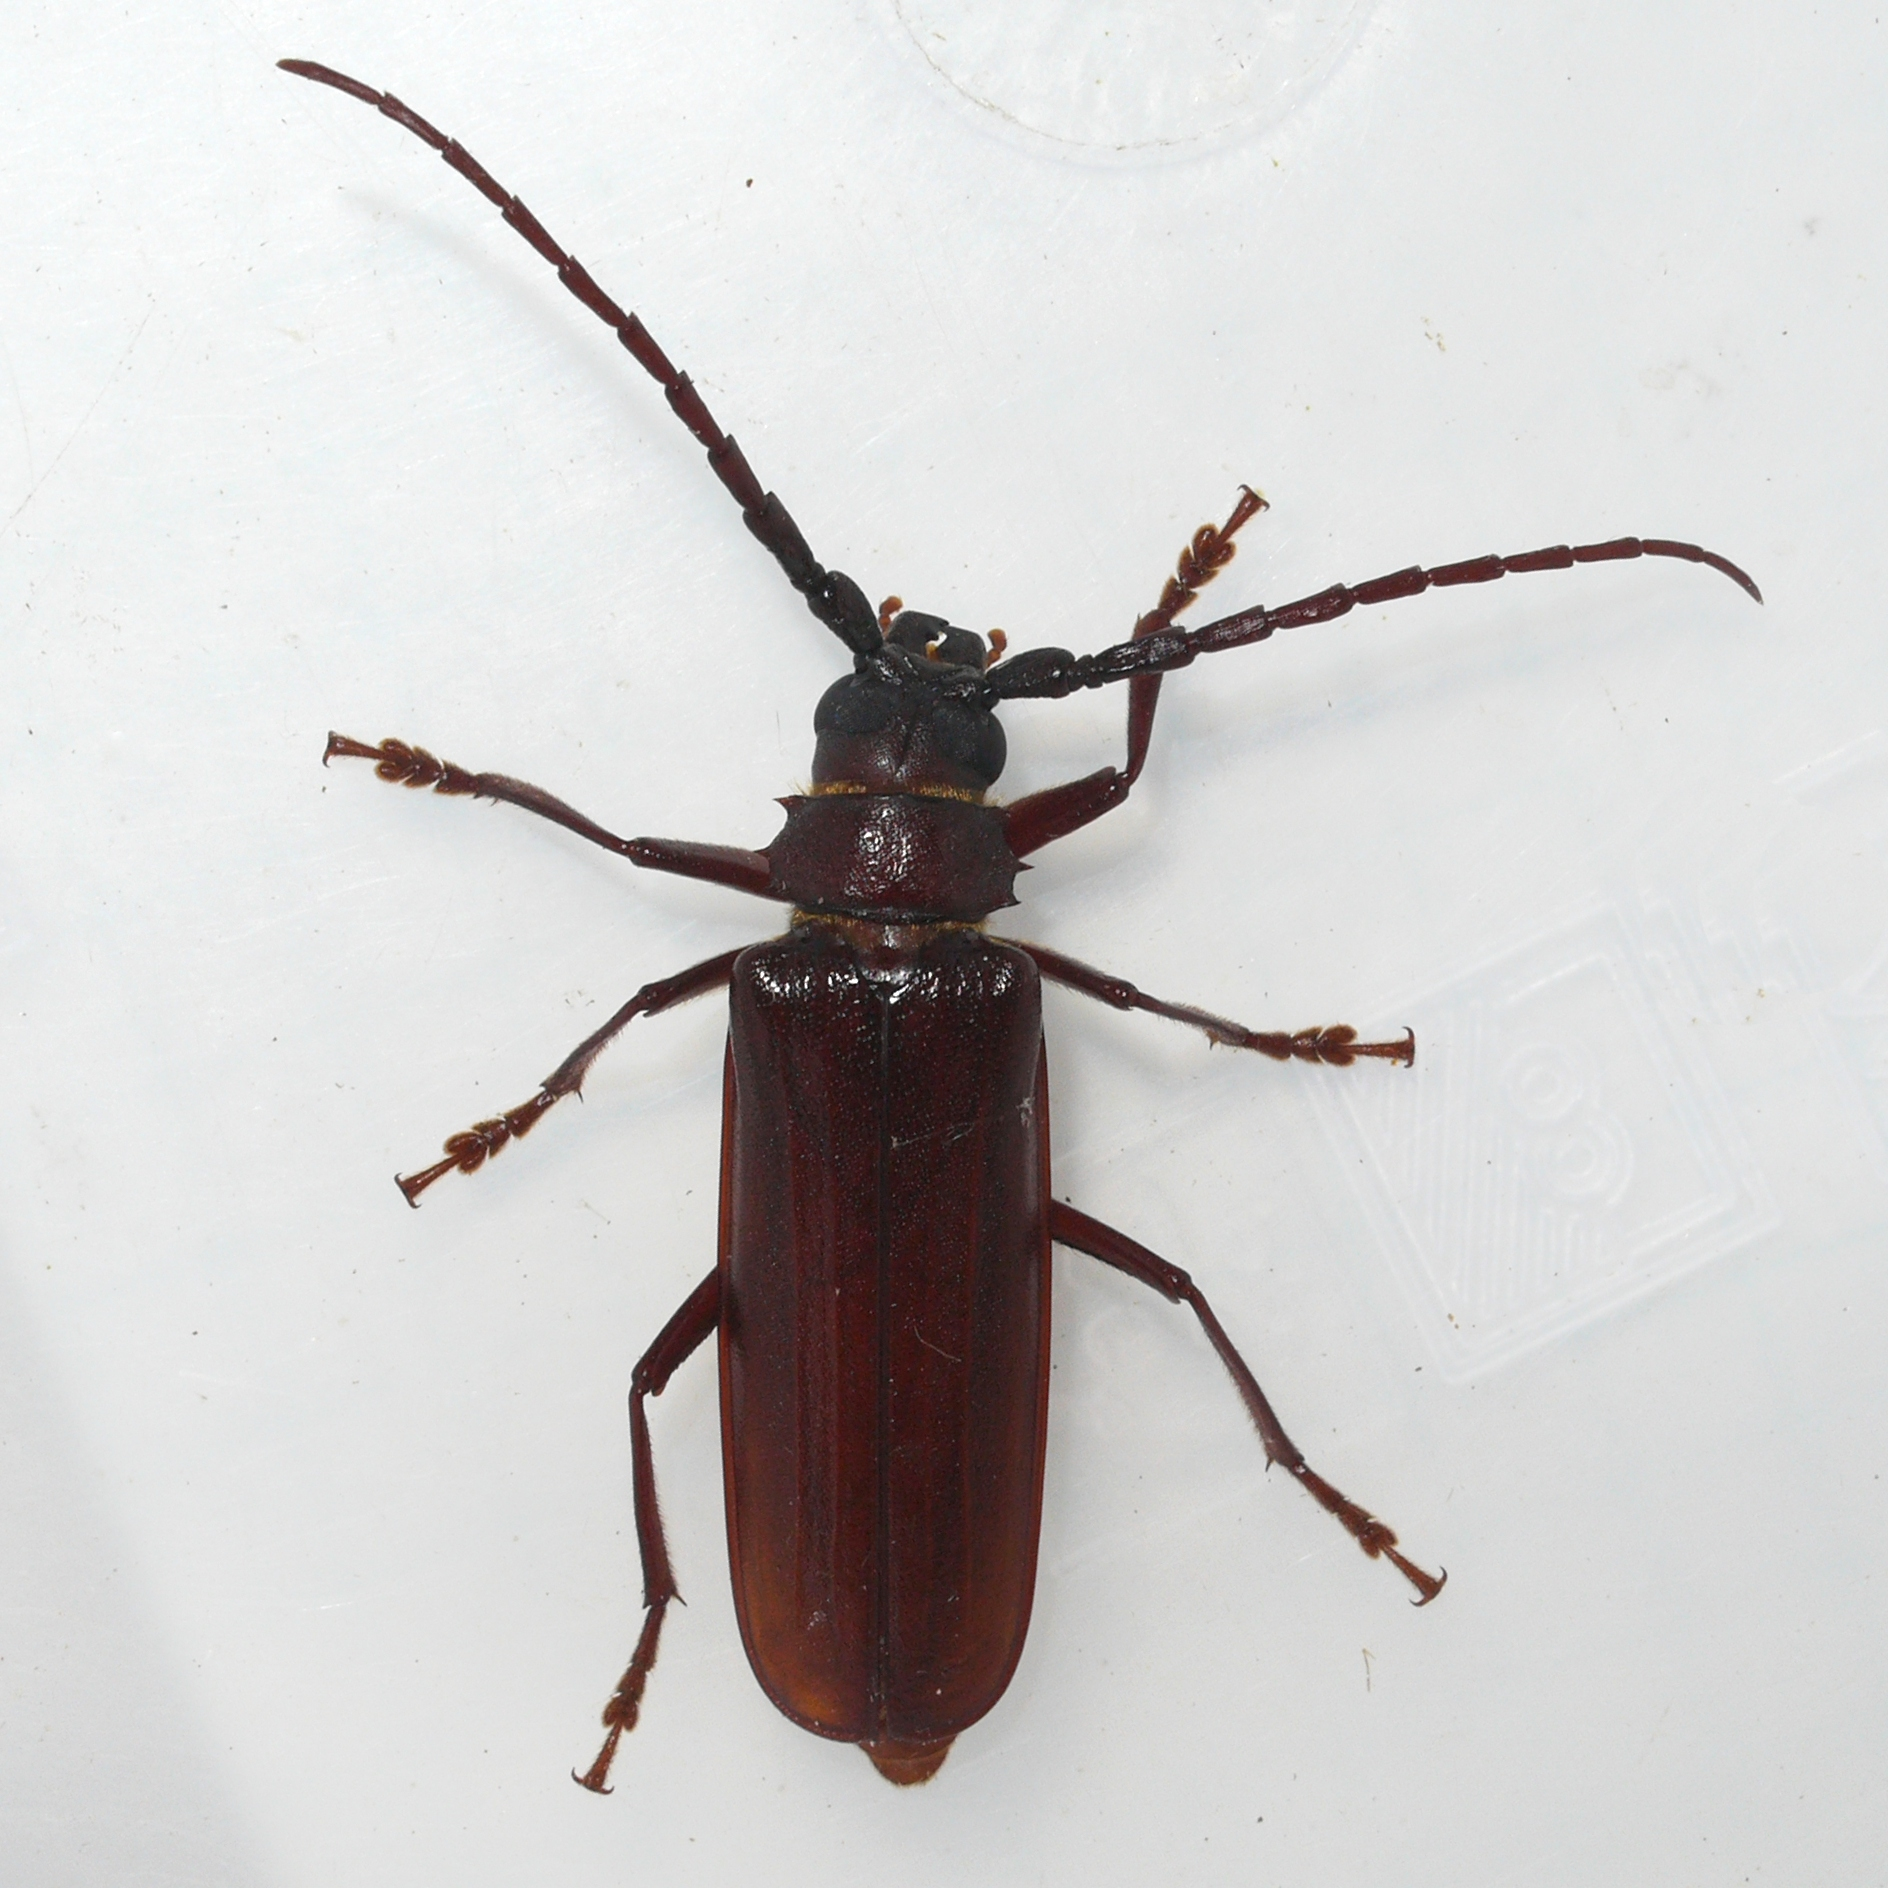 Image of Brown Prionid